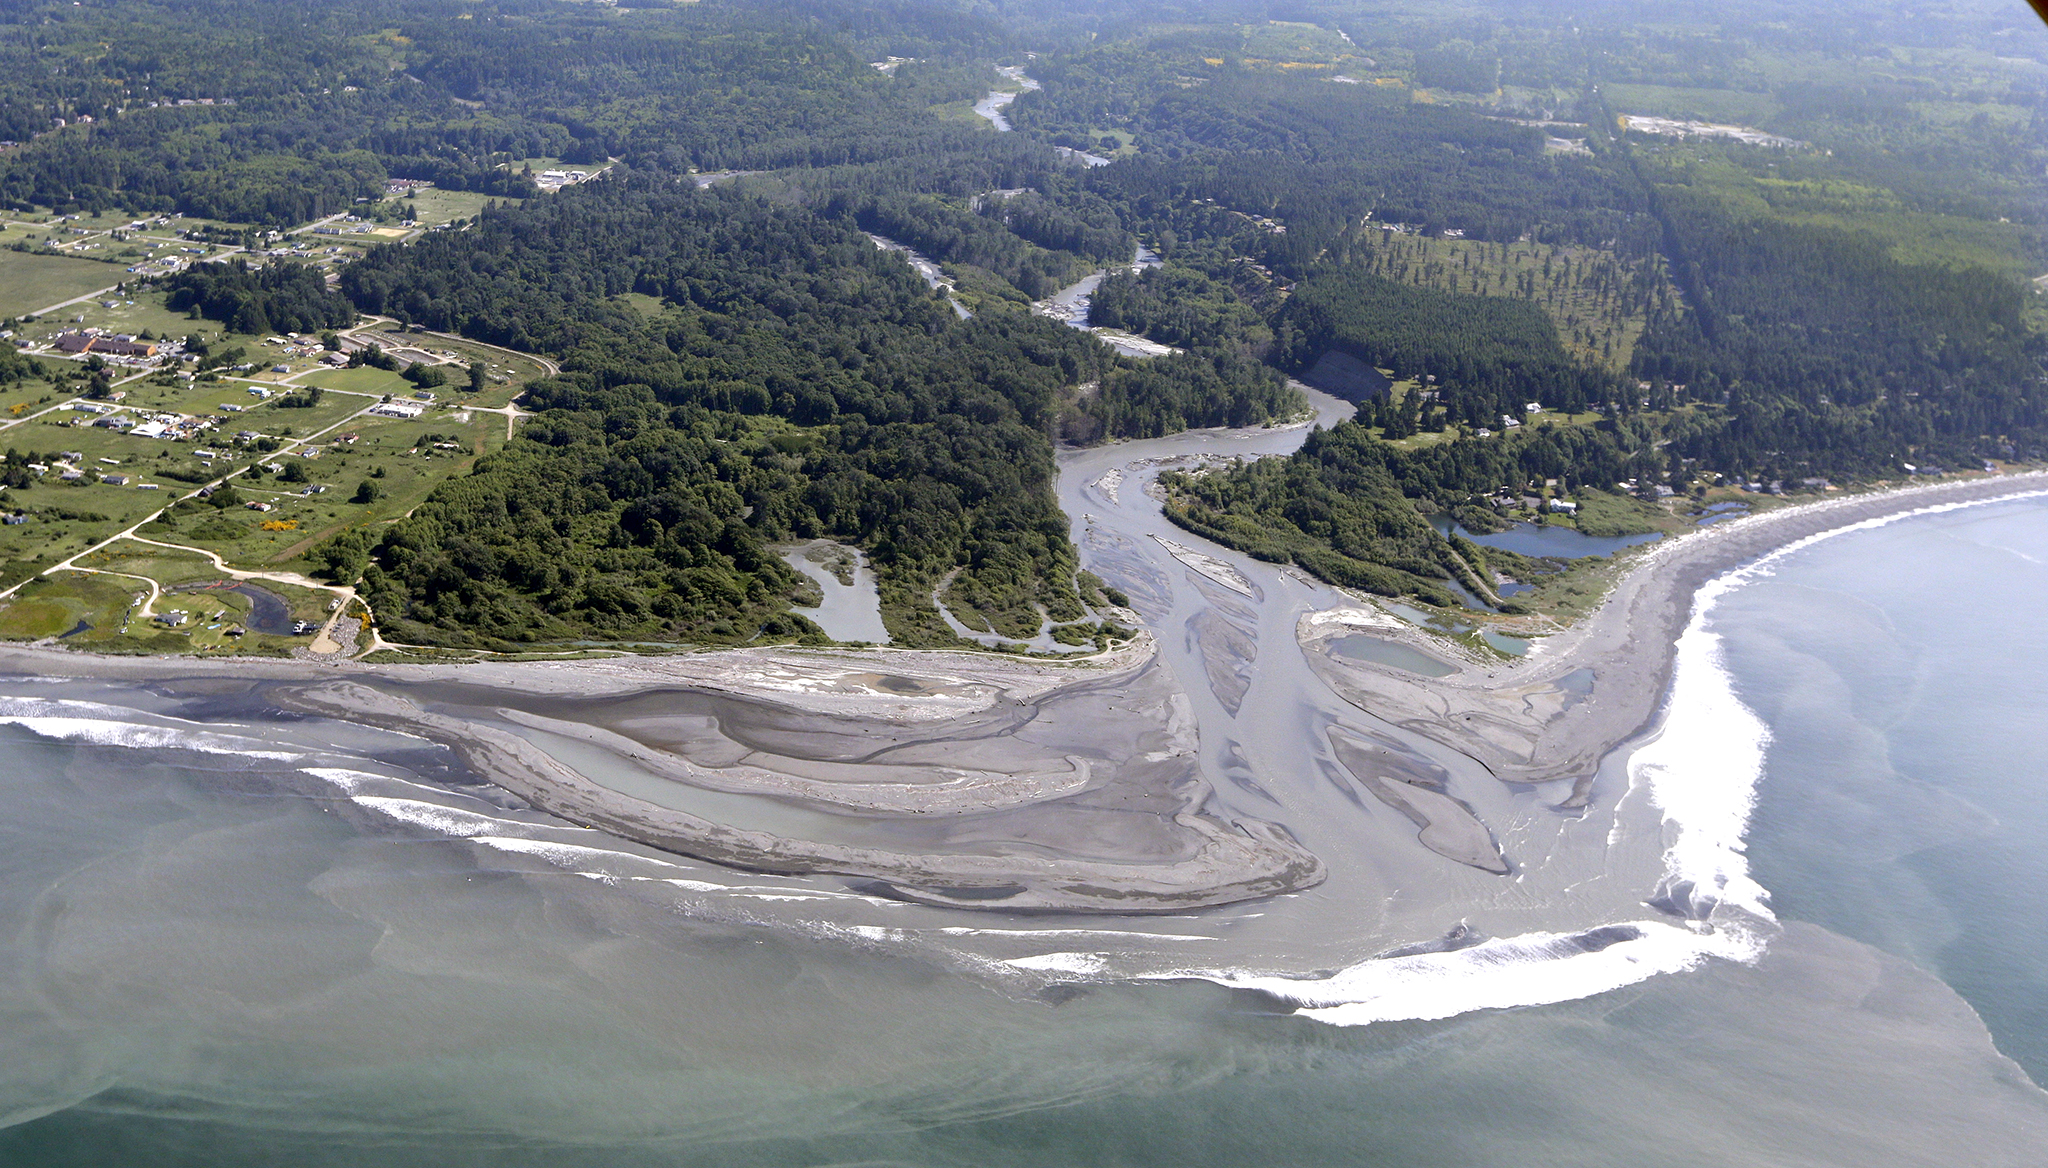 The nearshore of the Elwha River post dam removal. Photo: news.nationalgeographic.com